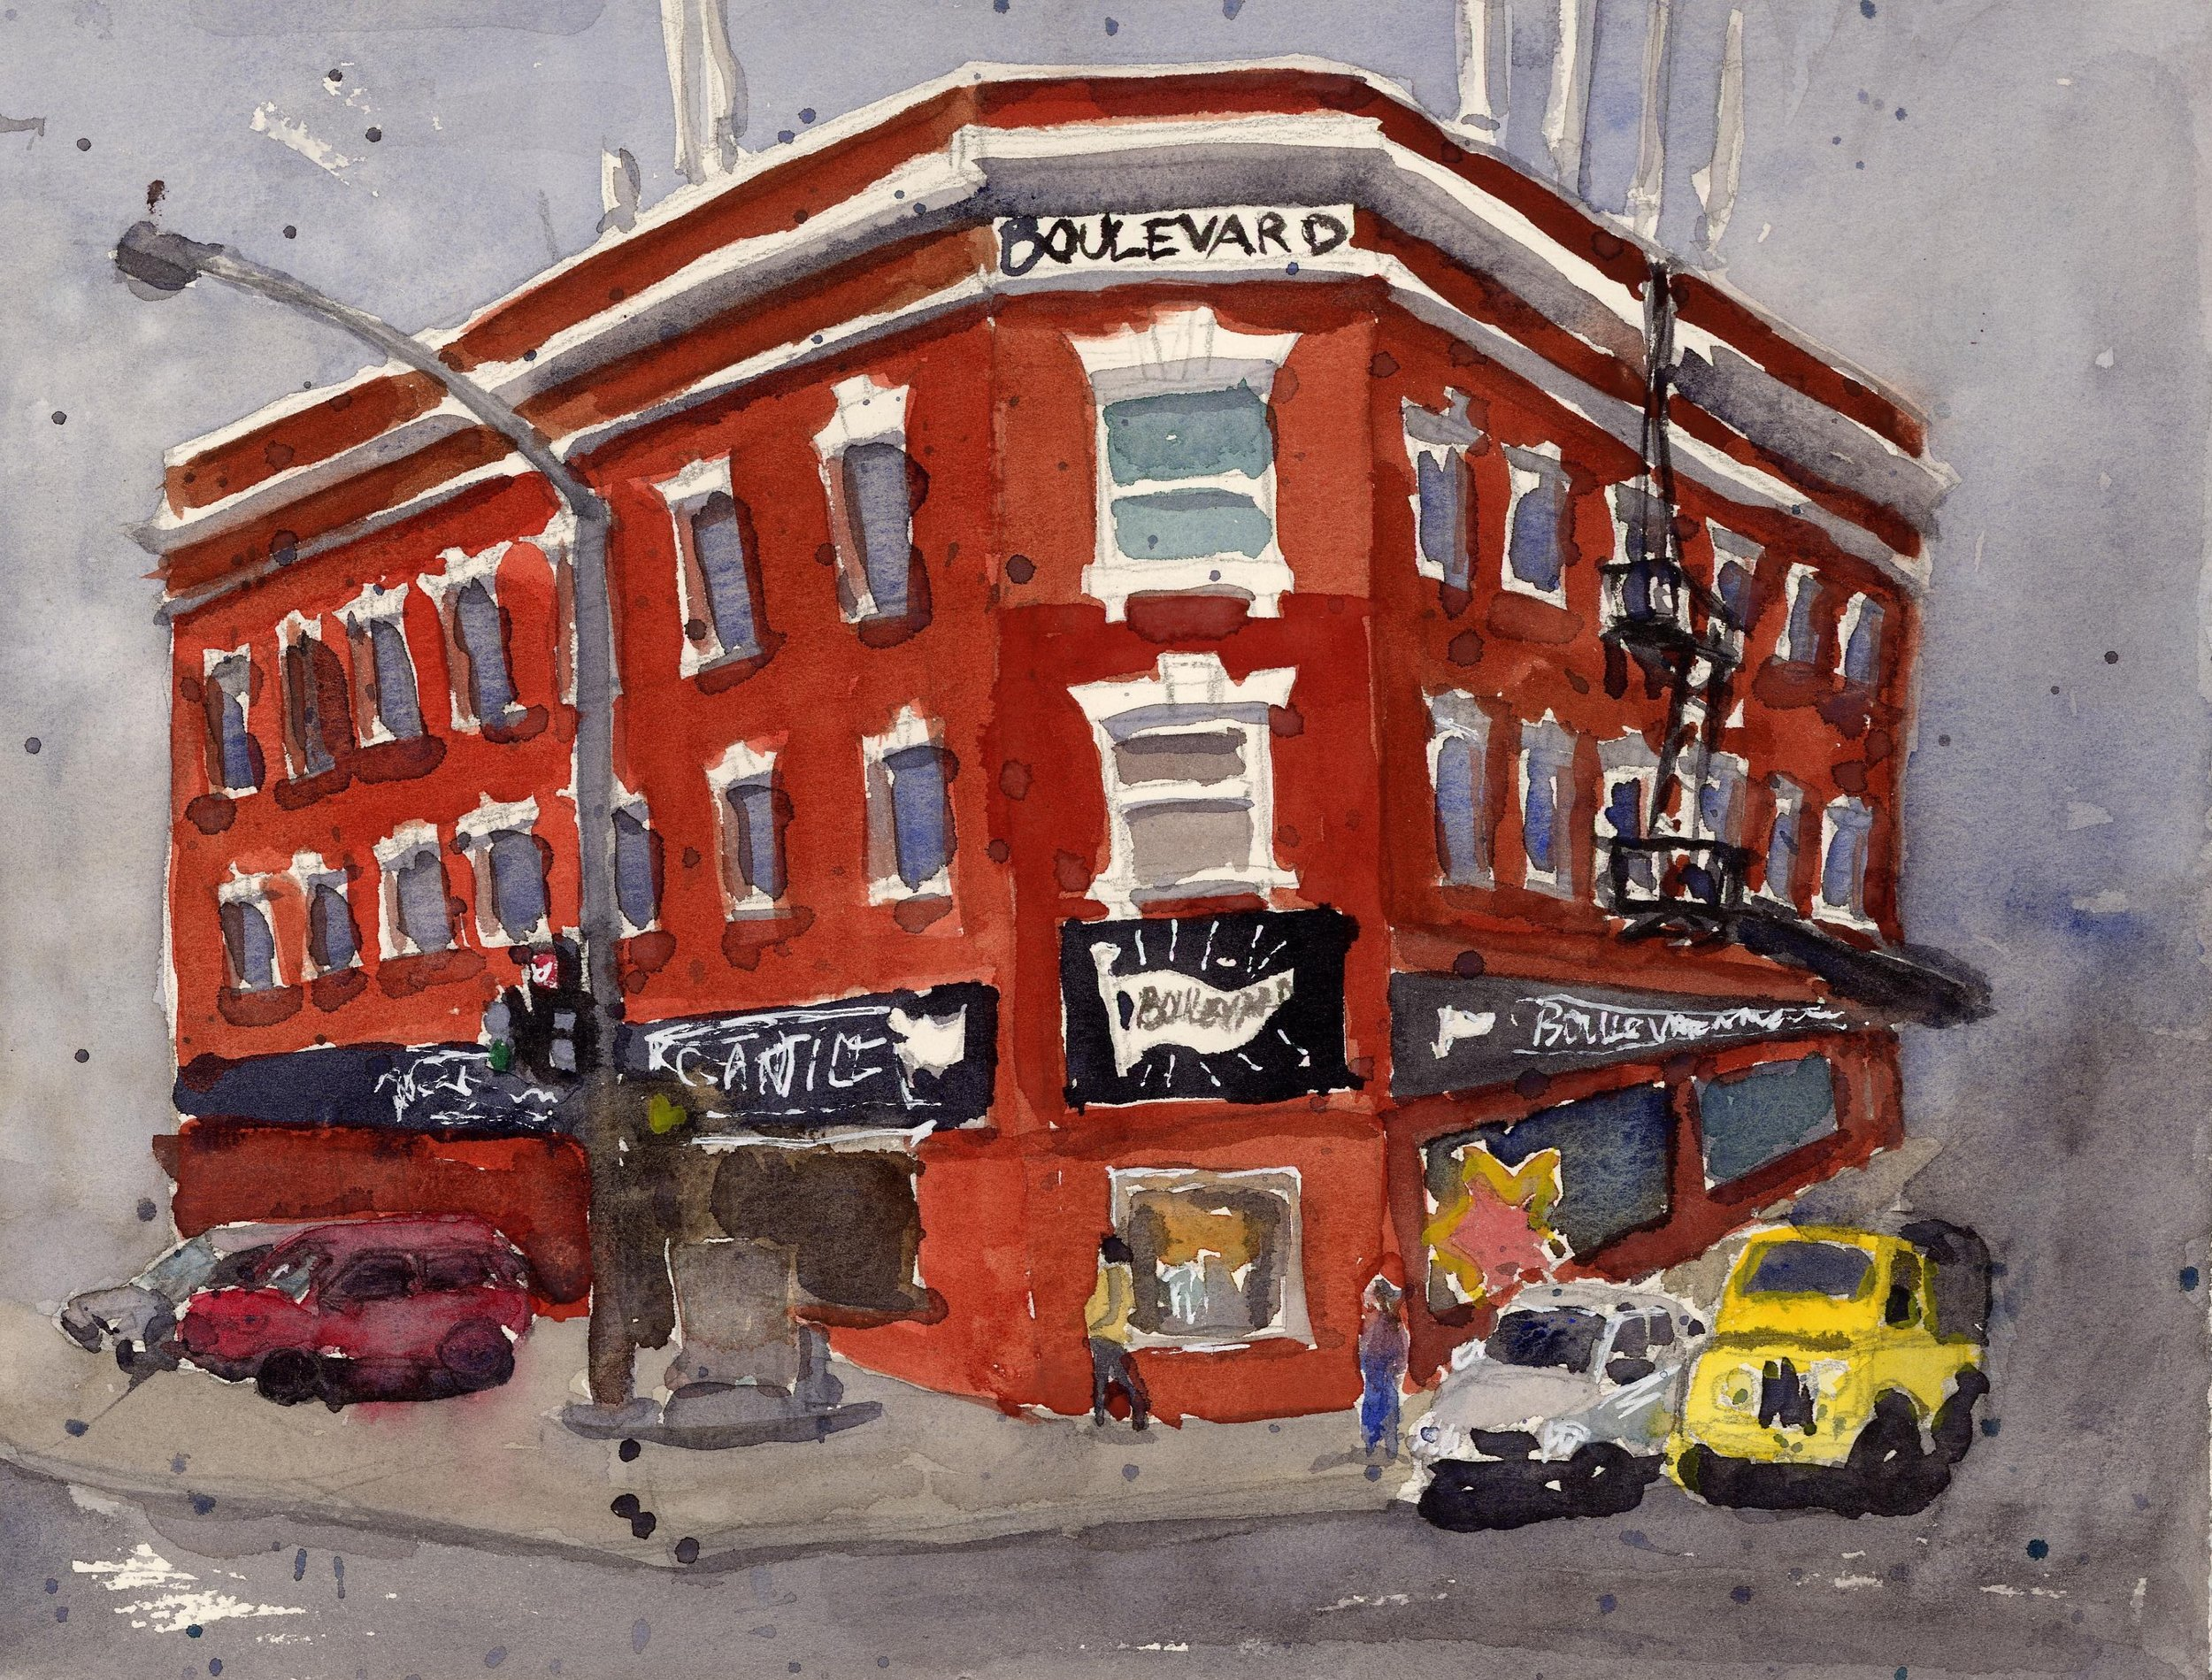 I love the shape of the Boulevard Mercantile building. It reminds me of the Flatiron building in New York. I also love the antennae and other doodads on the roof. It makes it seem like the building is somehow alive and listening to all the bustle going on around it. I stopped by one rainy day to admire it and this painting is the result.